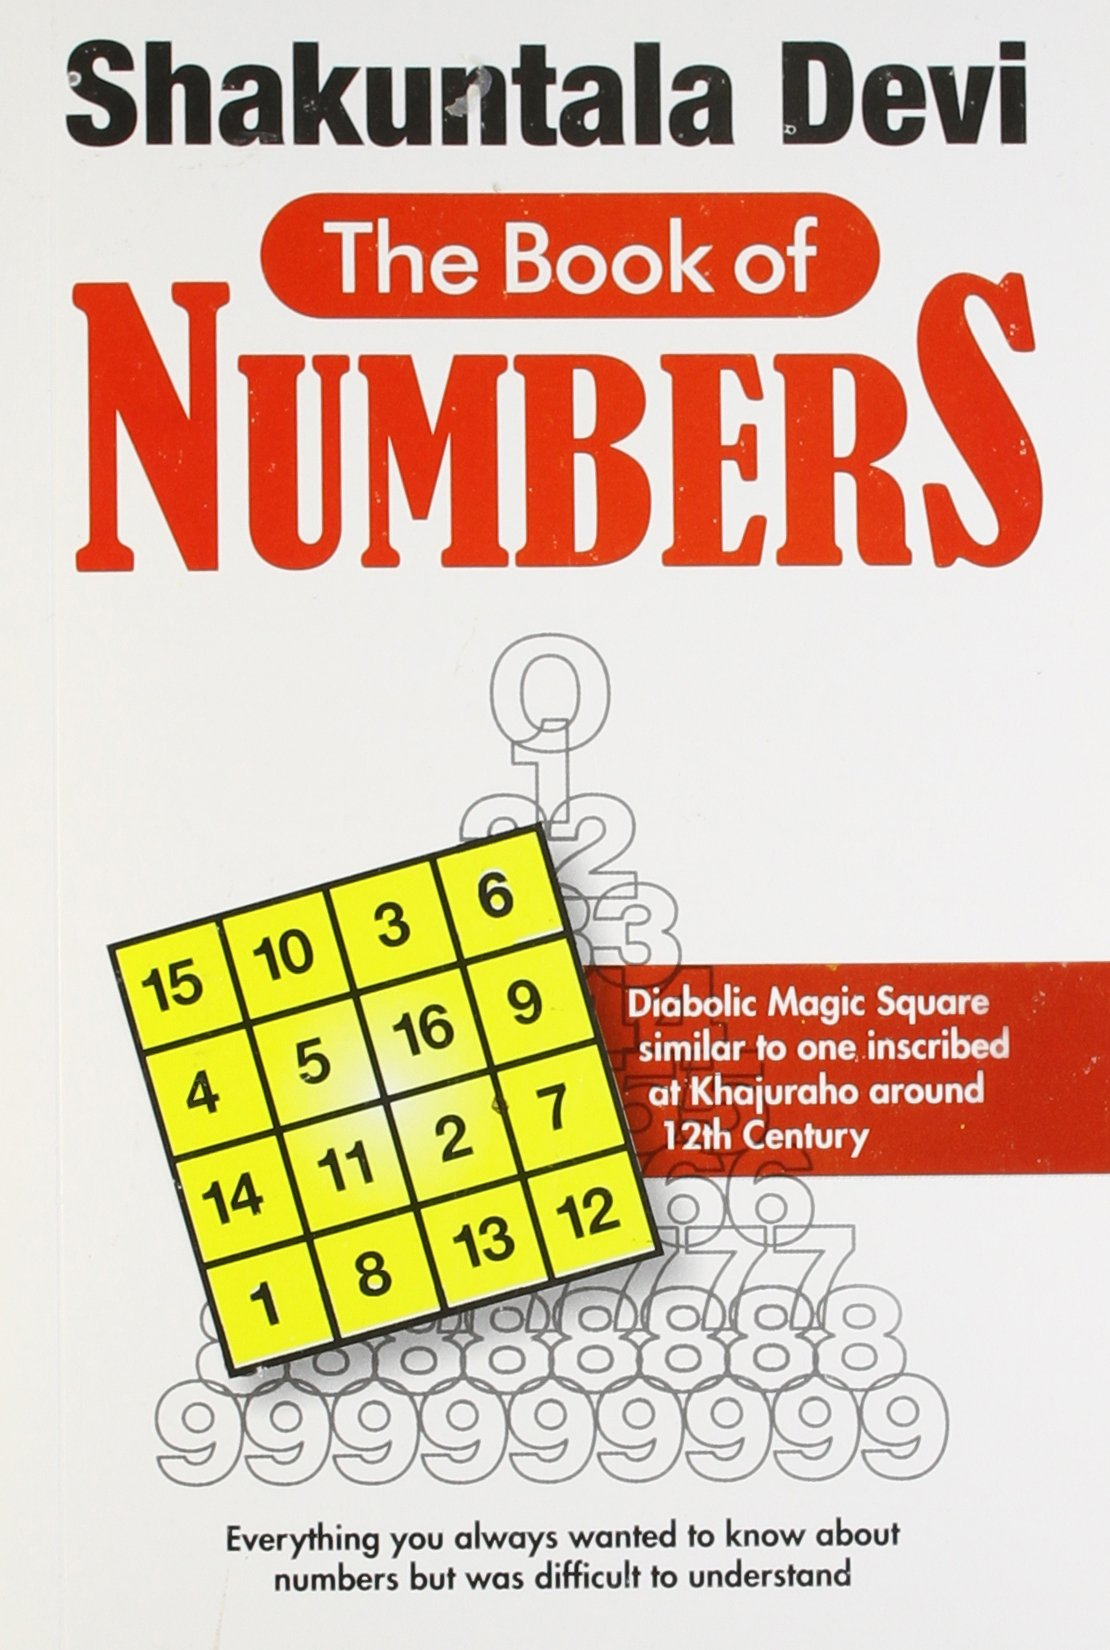 THE BOOK OF NUMBERS - Everything about Numbers. Diabolic Magic Square.